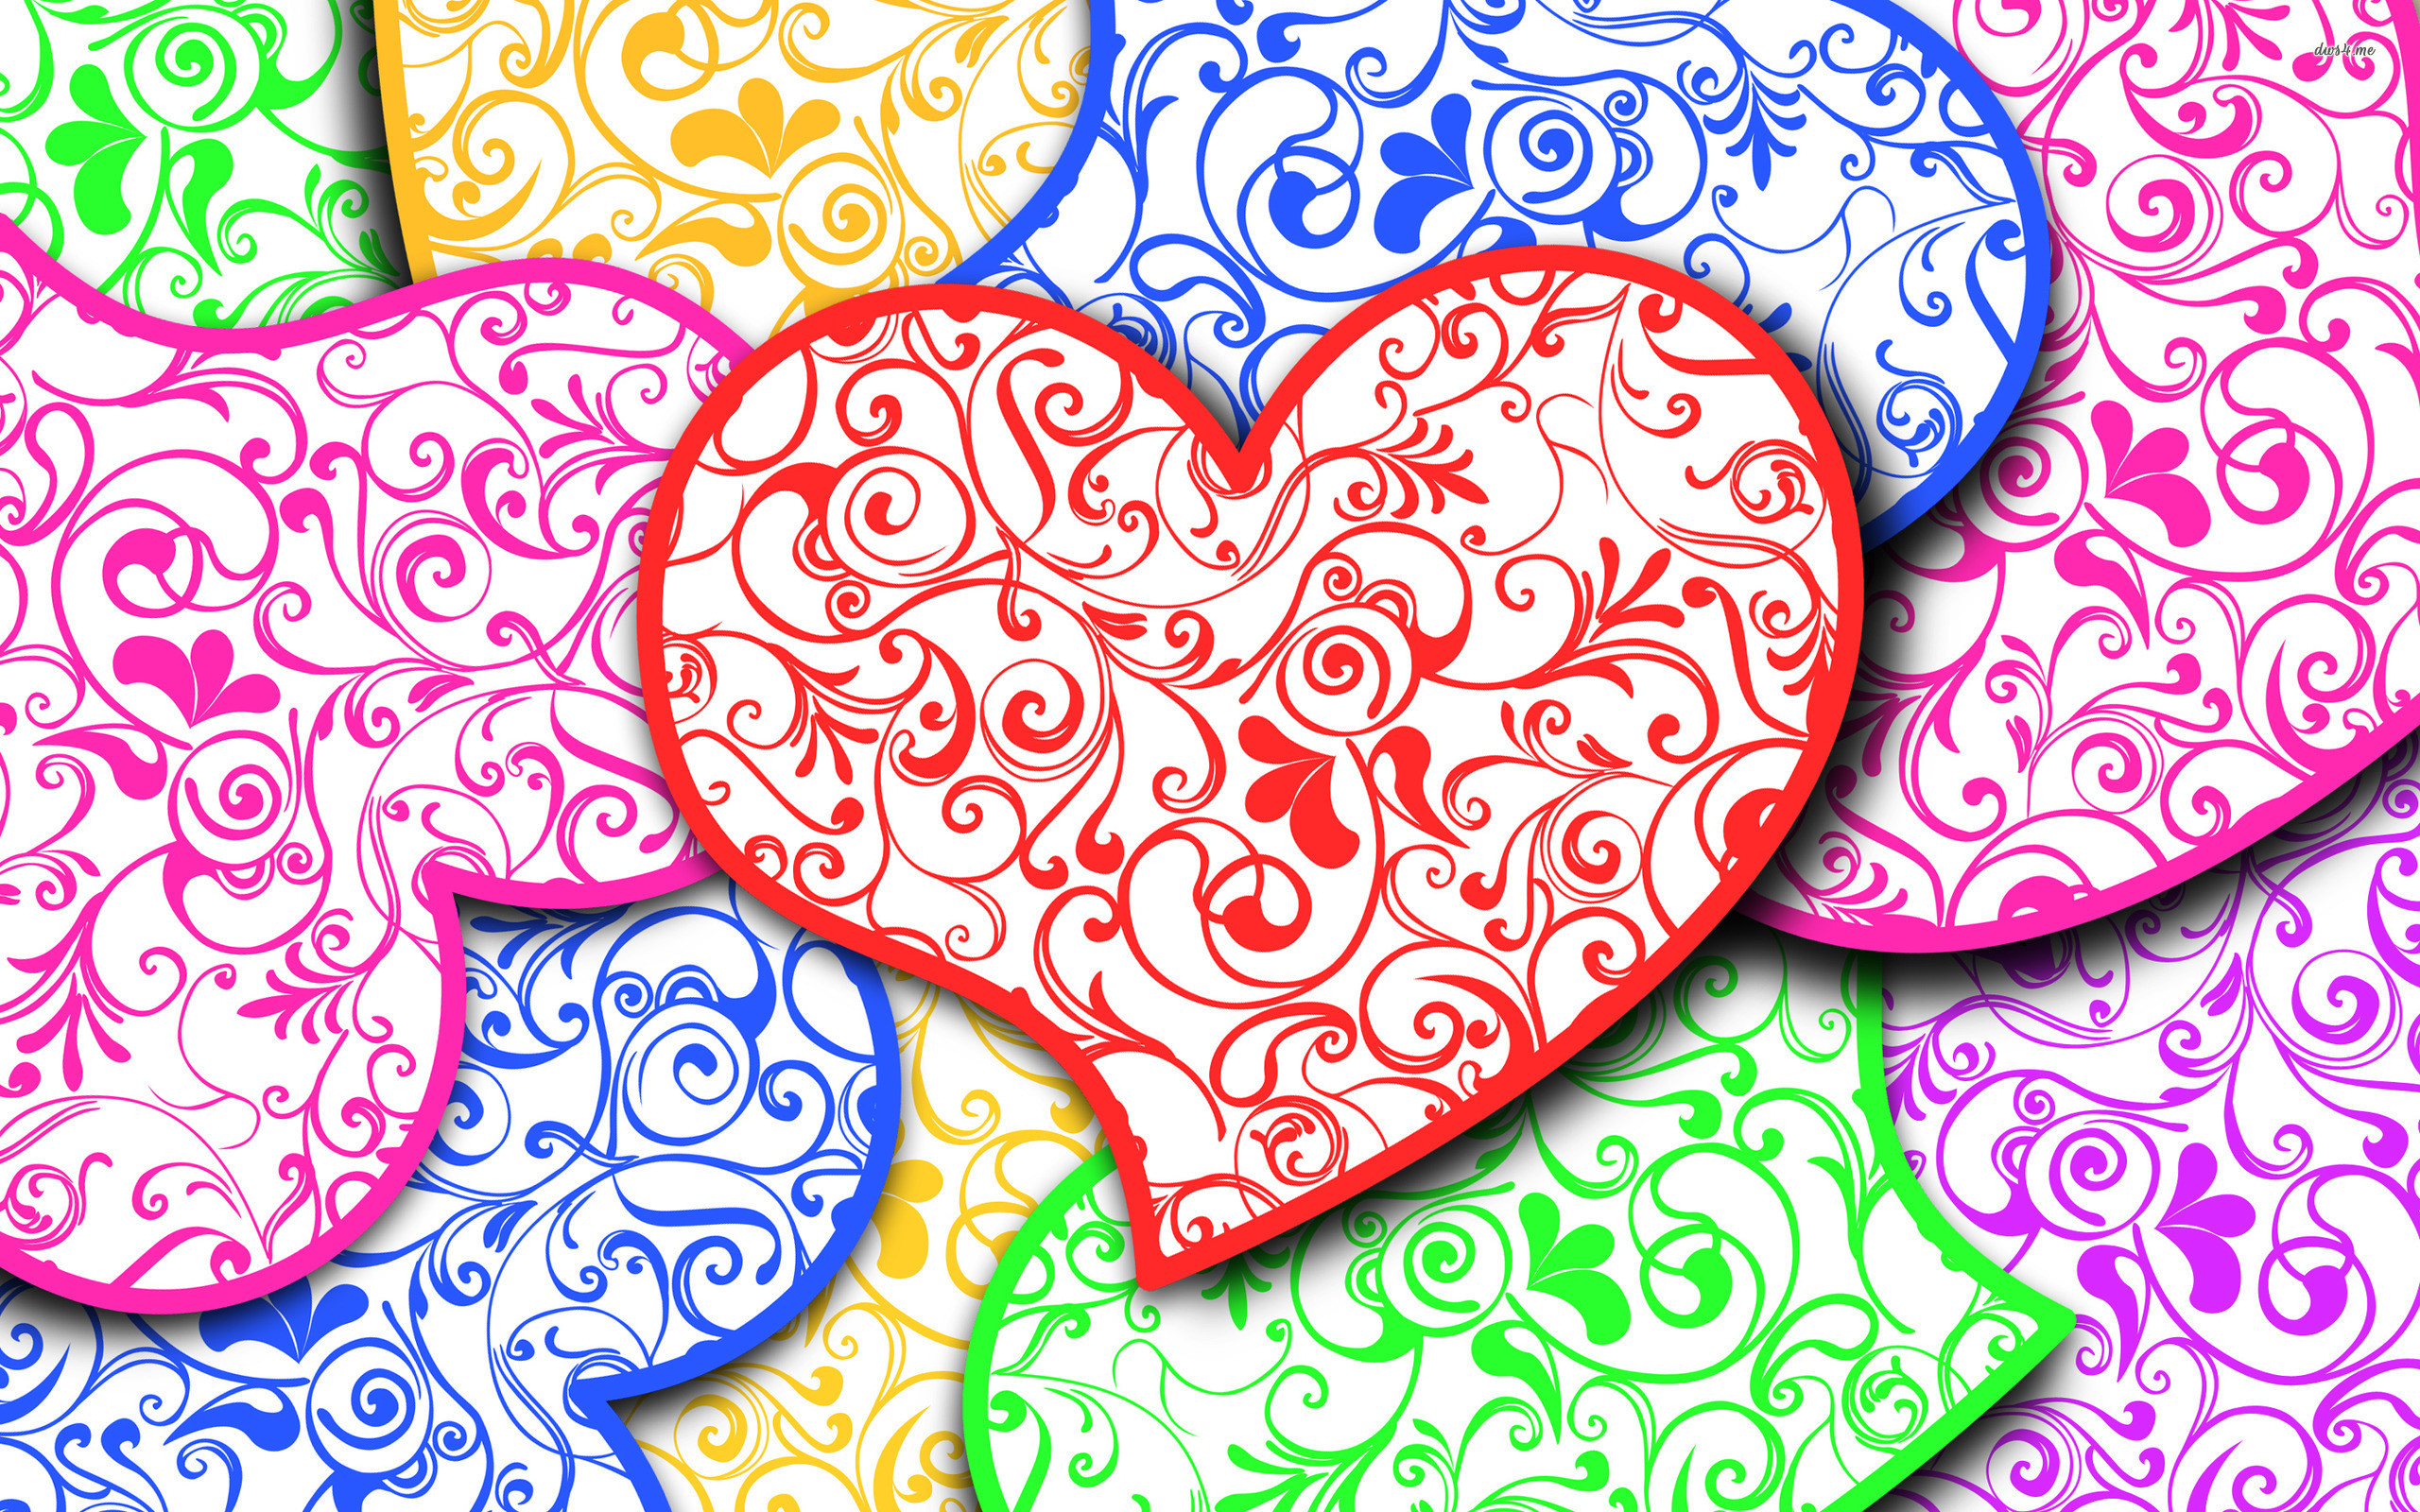 2560x1600 Hearts Wallpaper 23 - 2560 X 1600